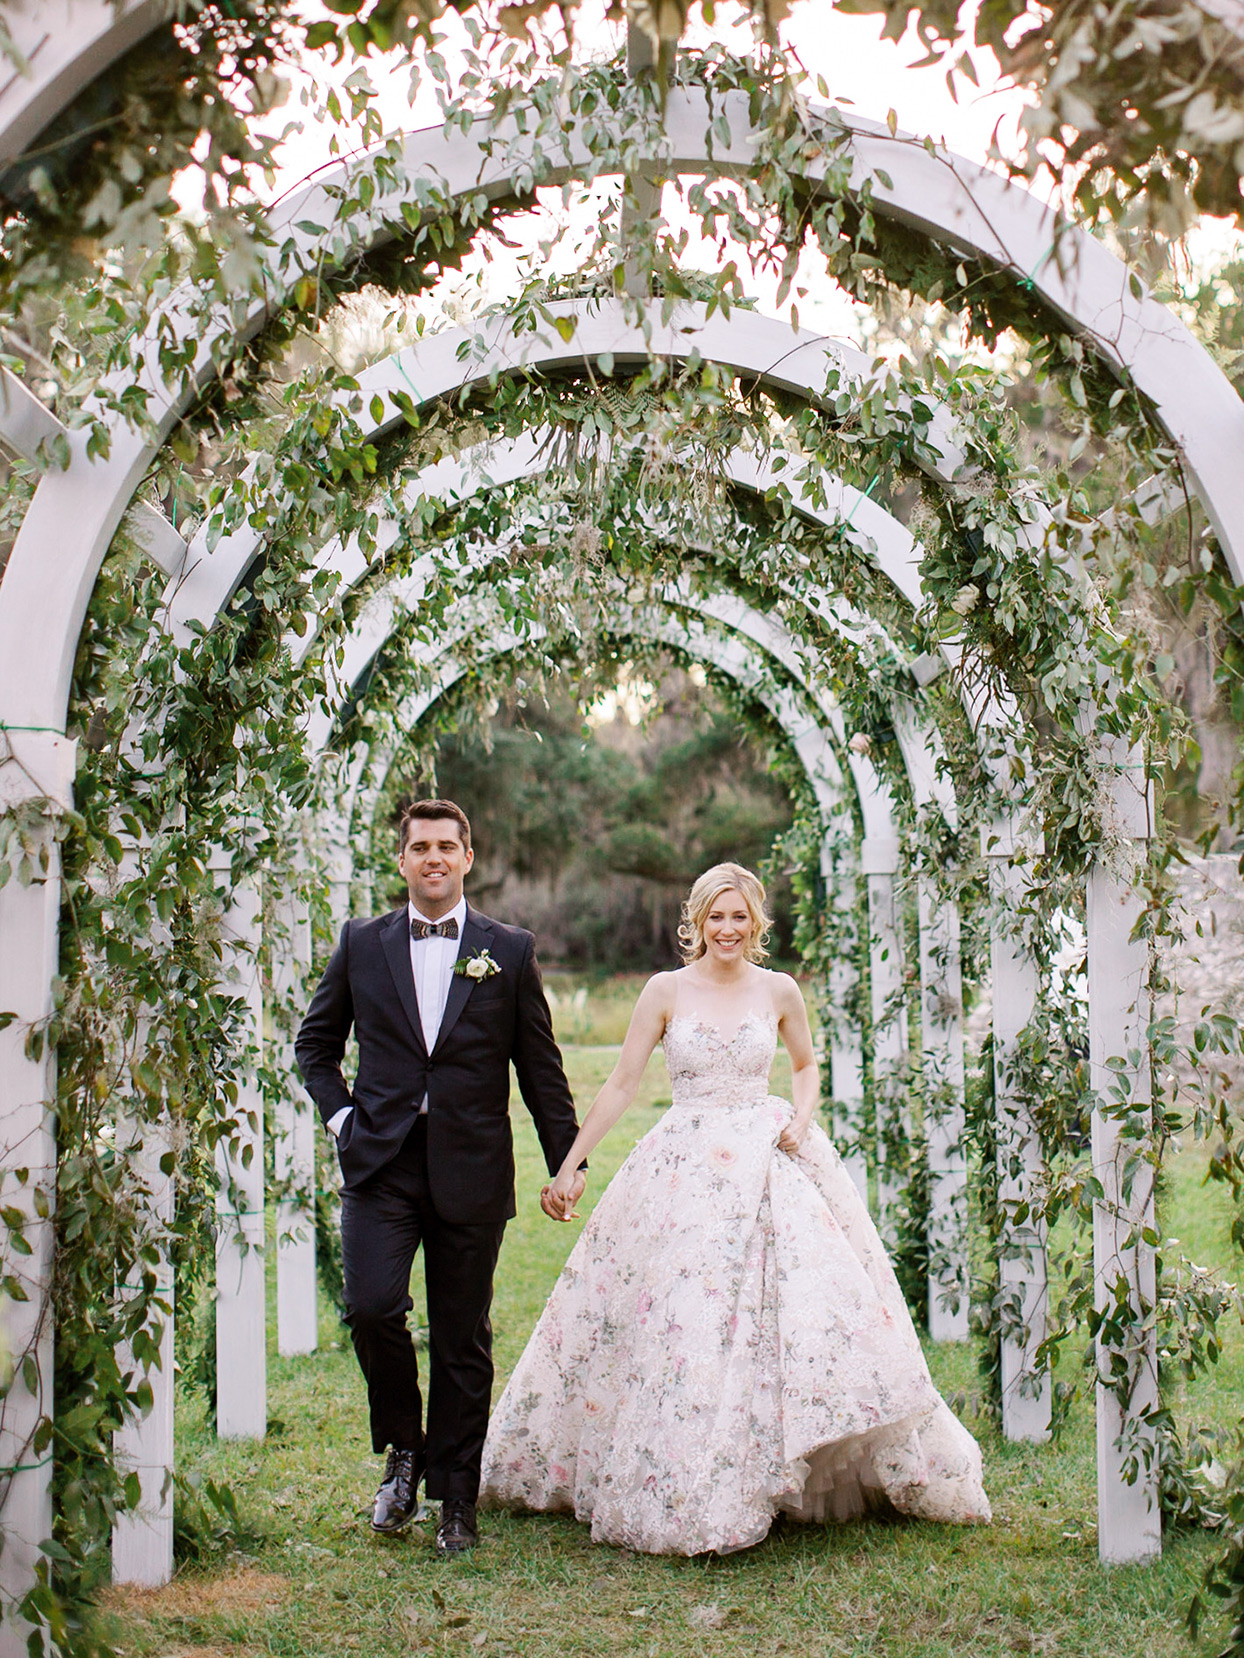 chelsea john wedding couple under white garden archway